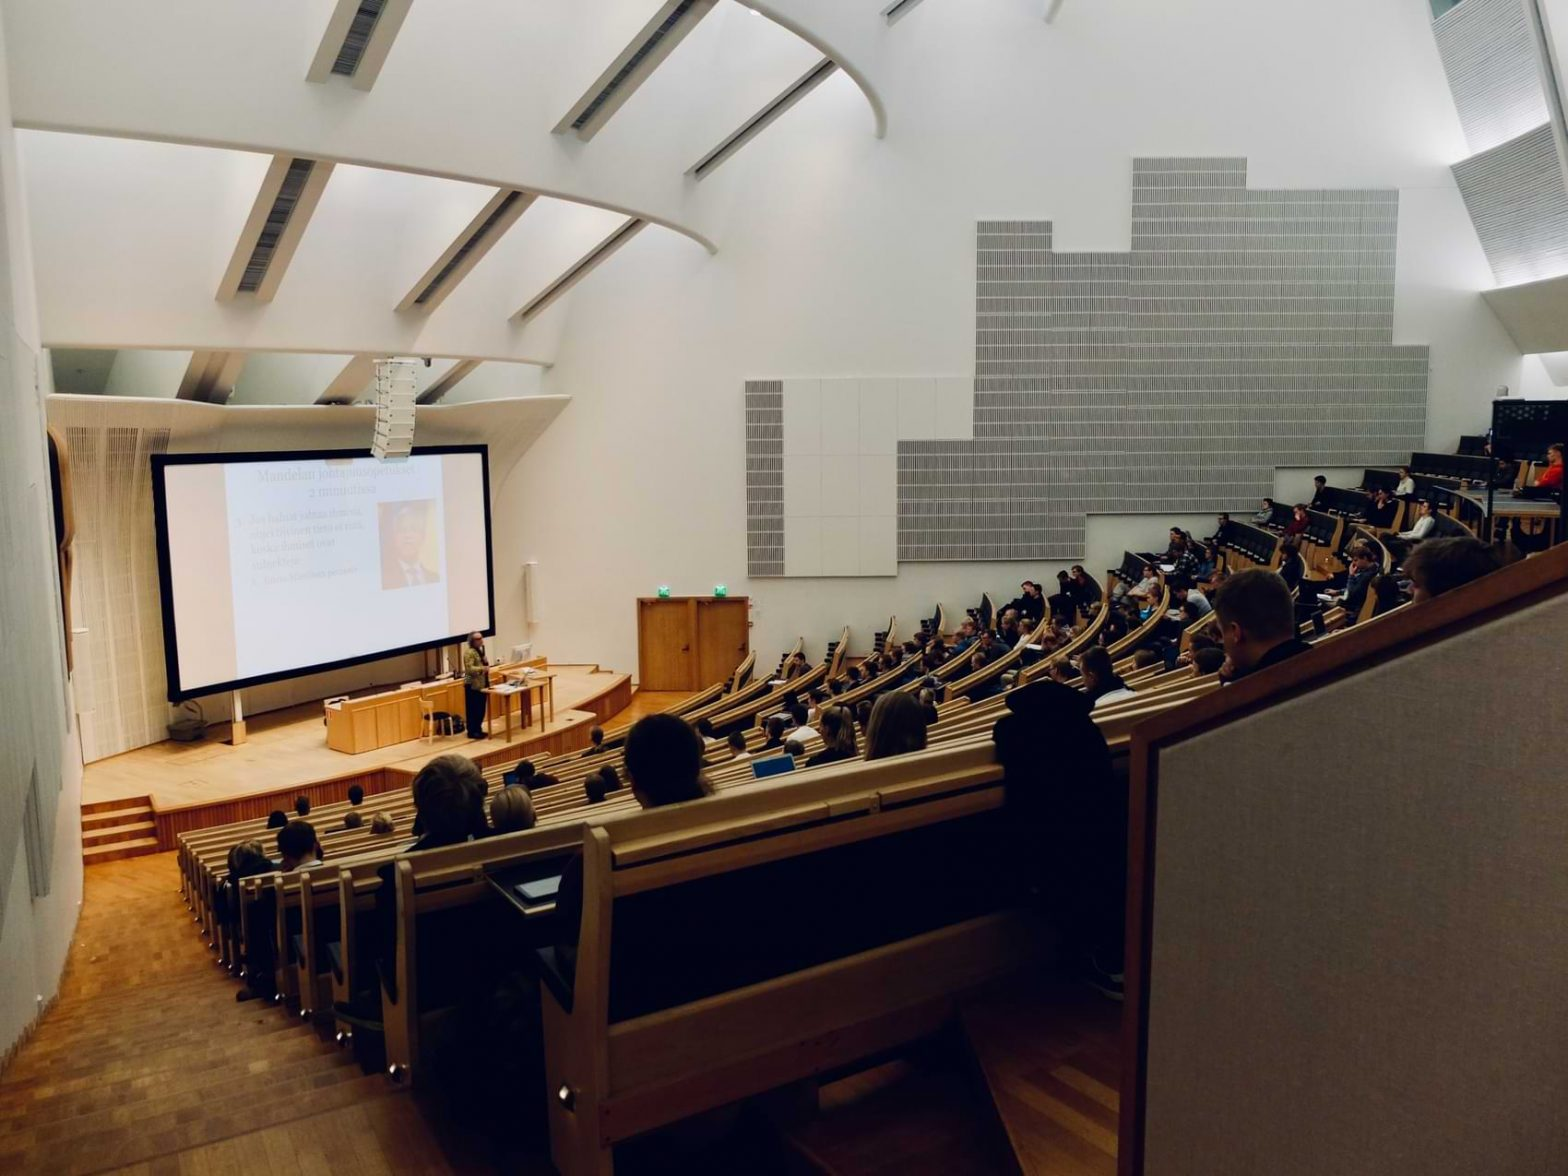 A lecture hall prepares for the upcoming Fall semester